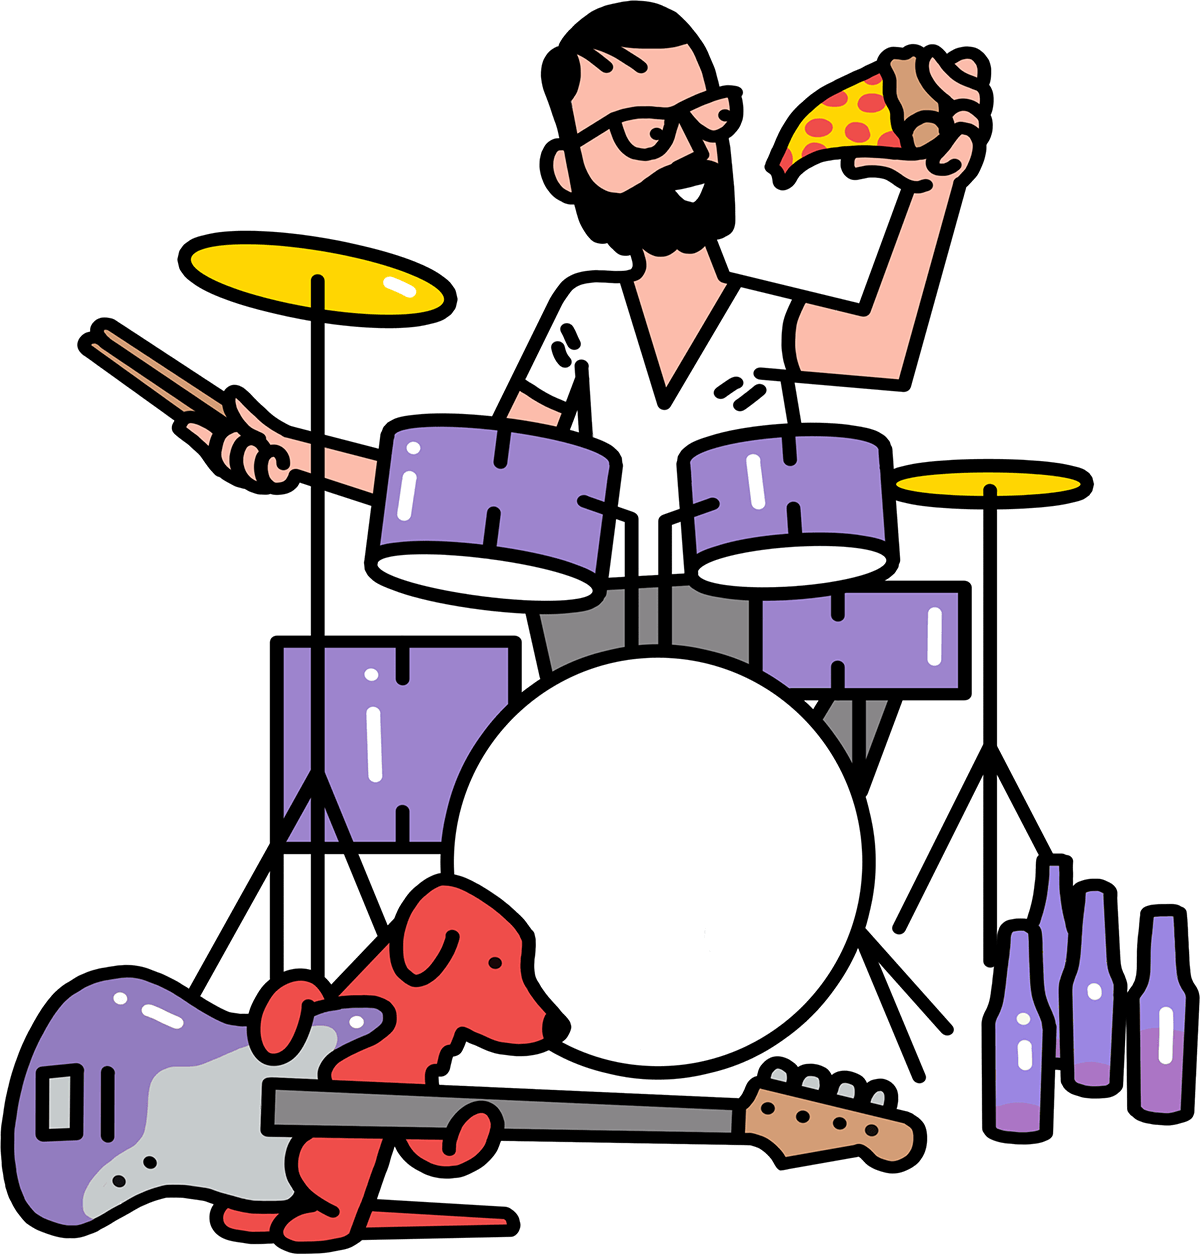 creative playing drums, eating pizza and drinking beer